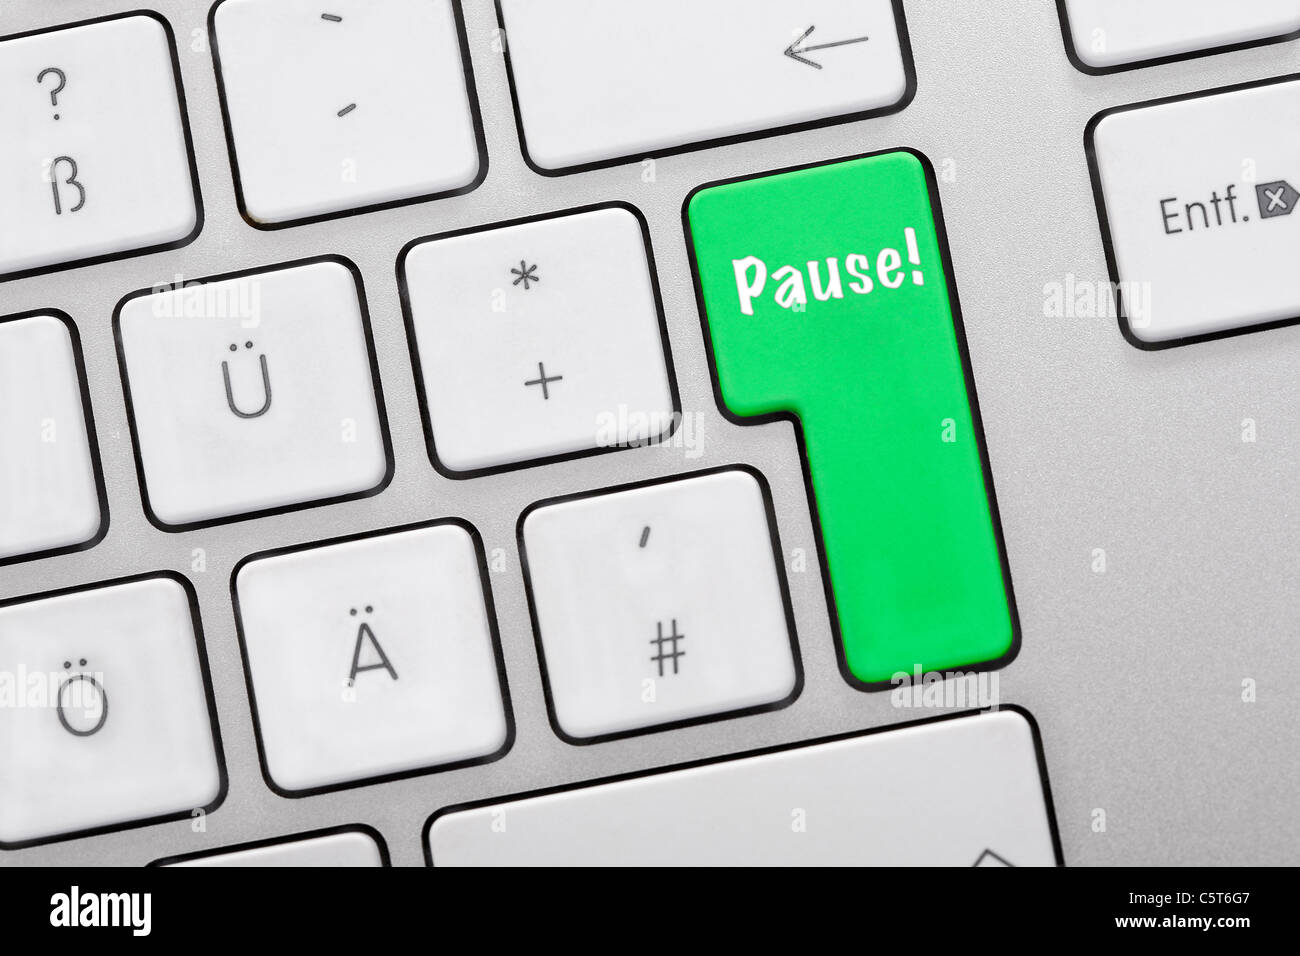 Illustration of keyboard having green key with pause sign, close up - Stock Image